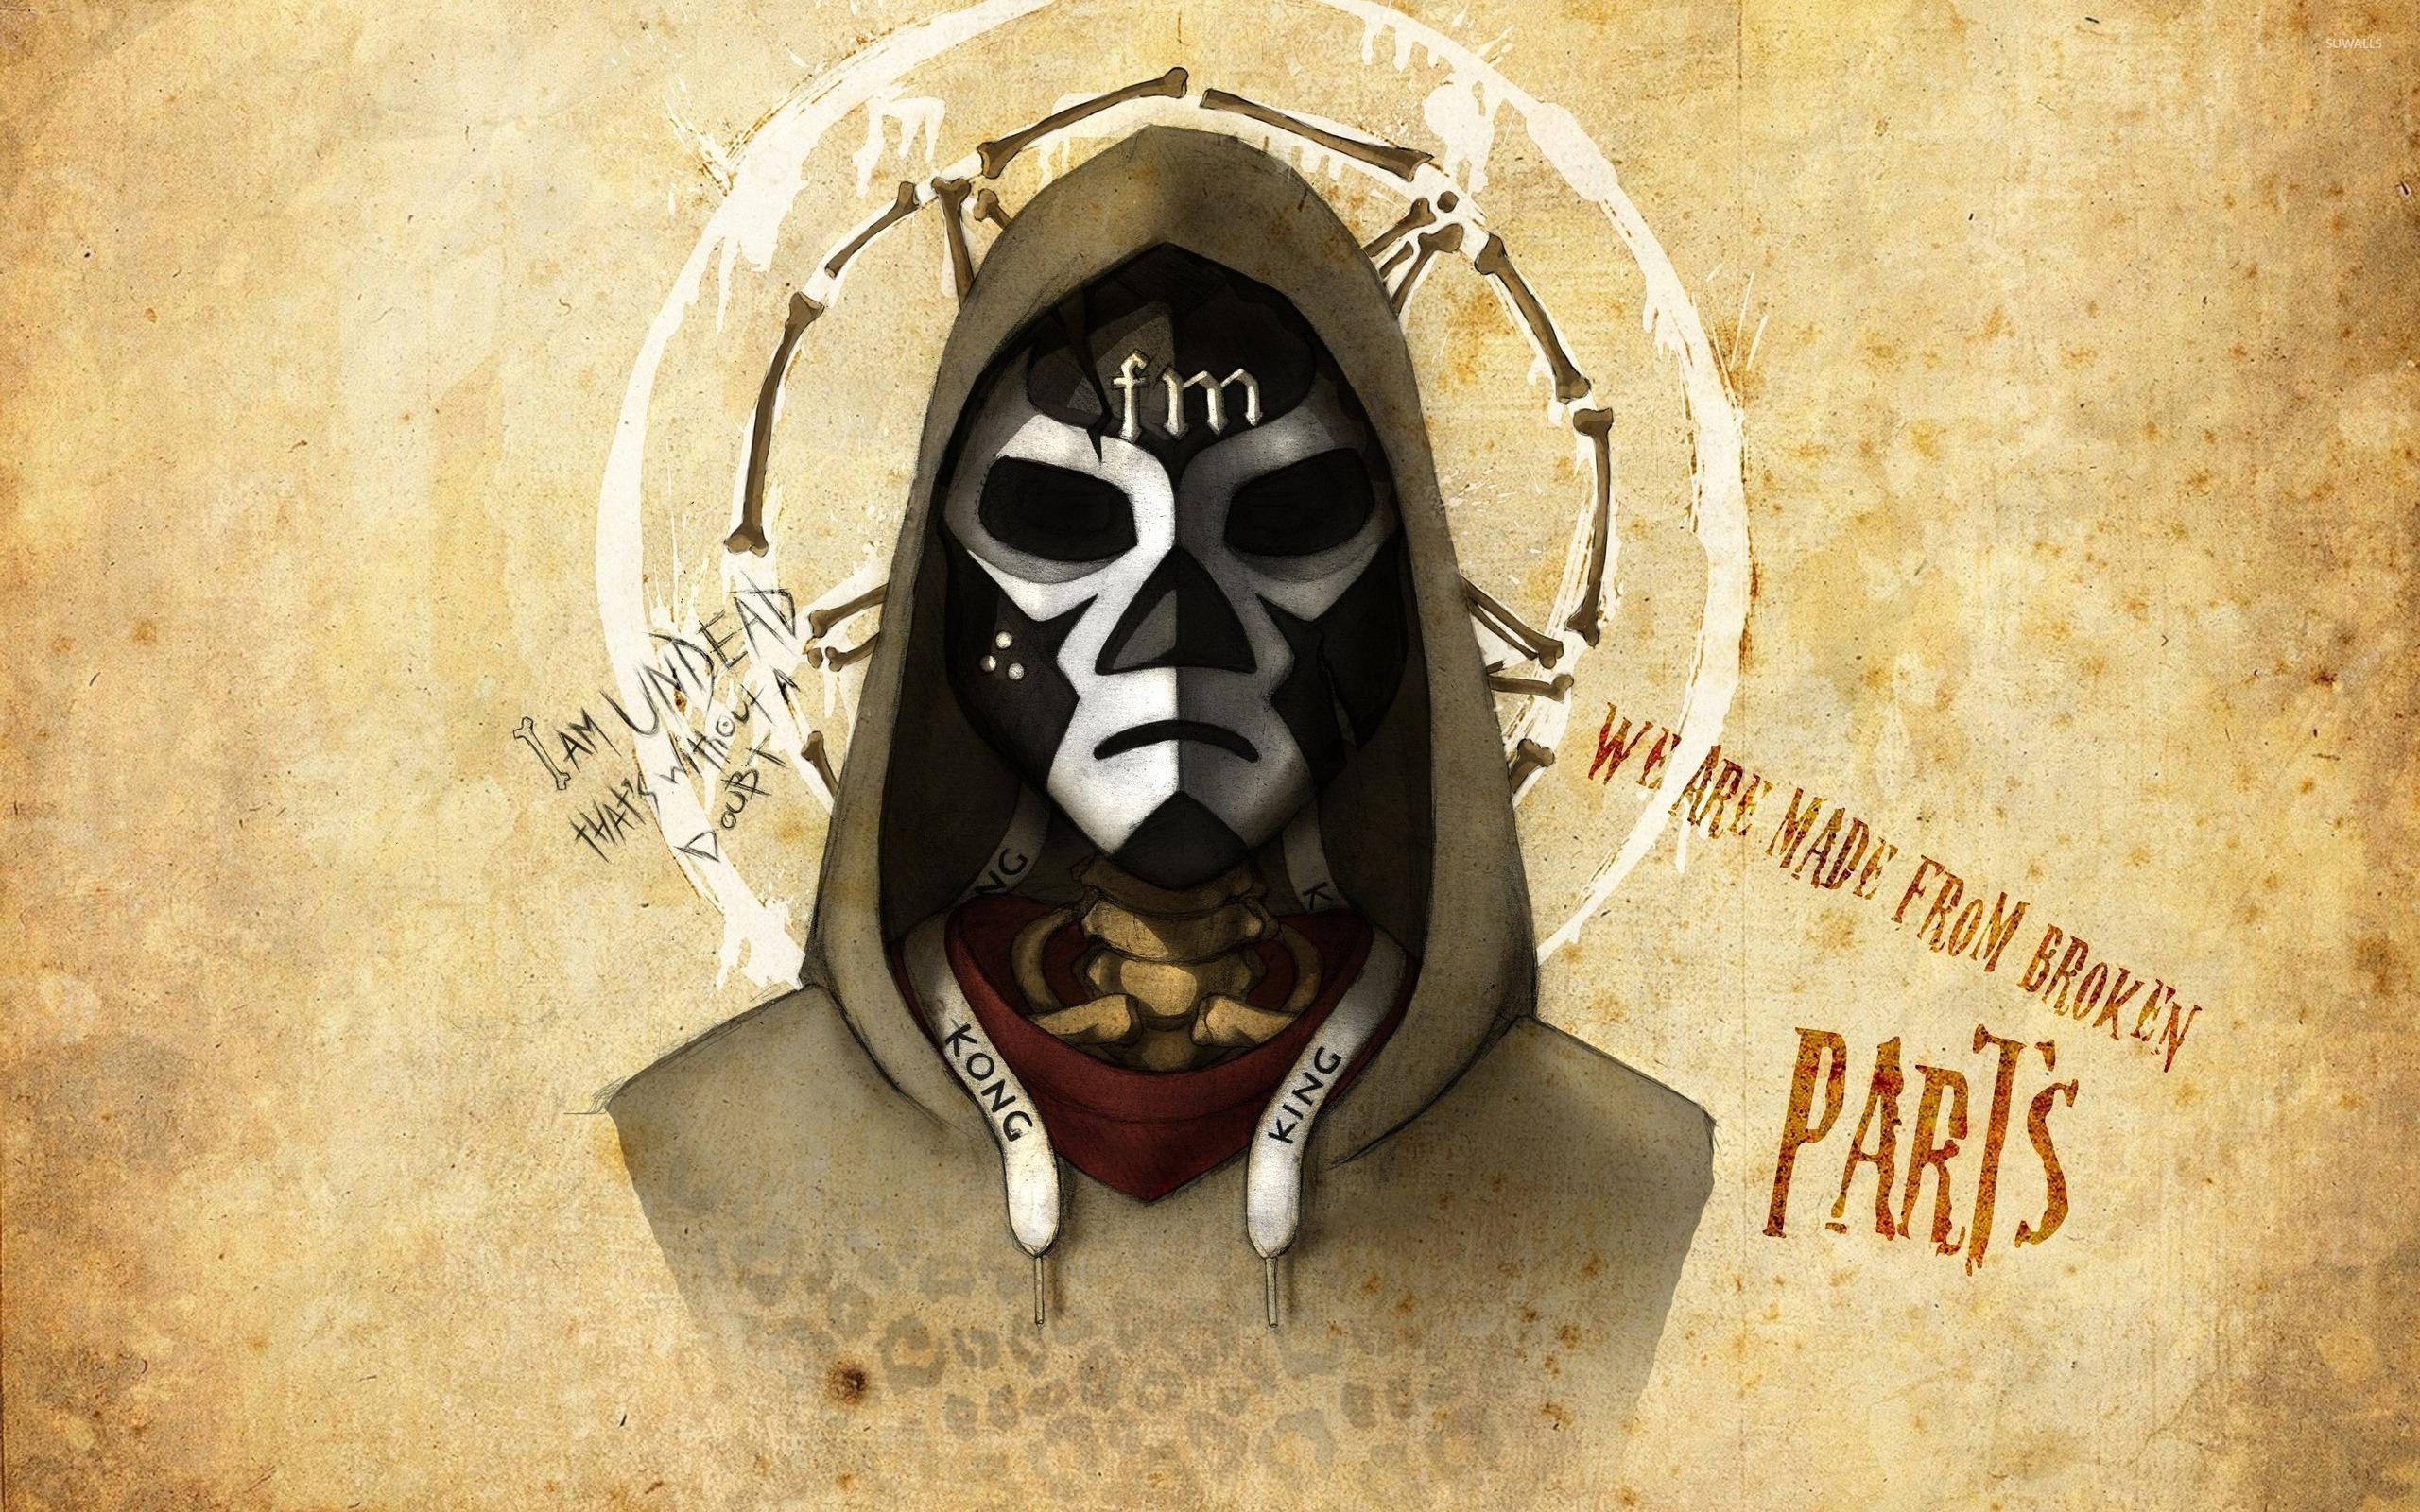 Download wallpaper 2560x1440 hollywood undead, hollywood, undead.